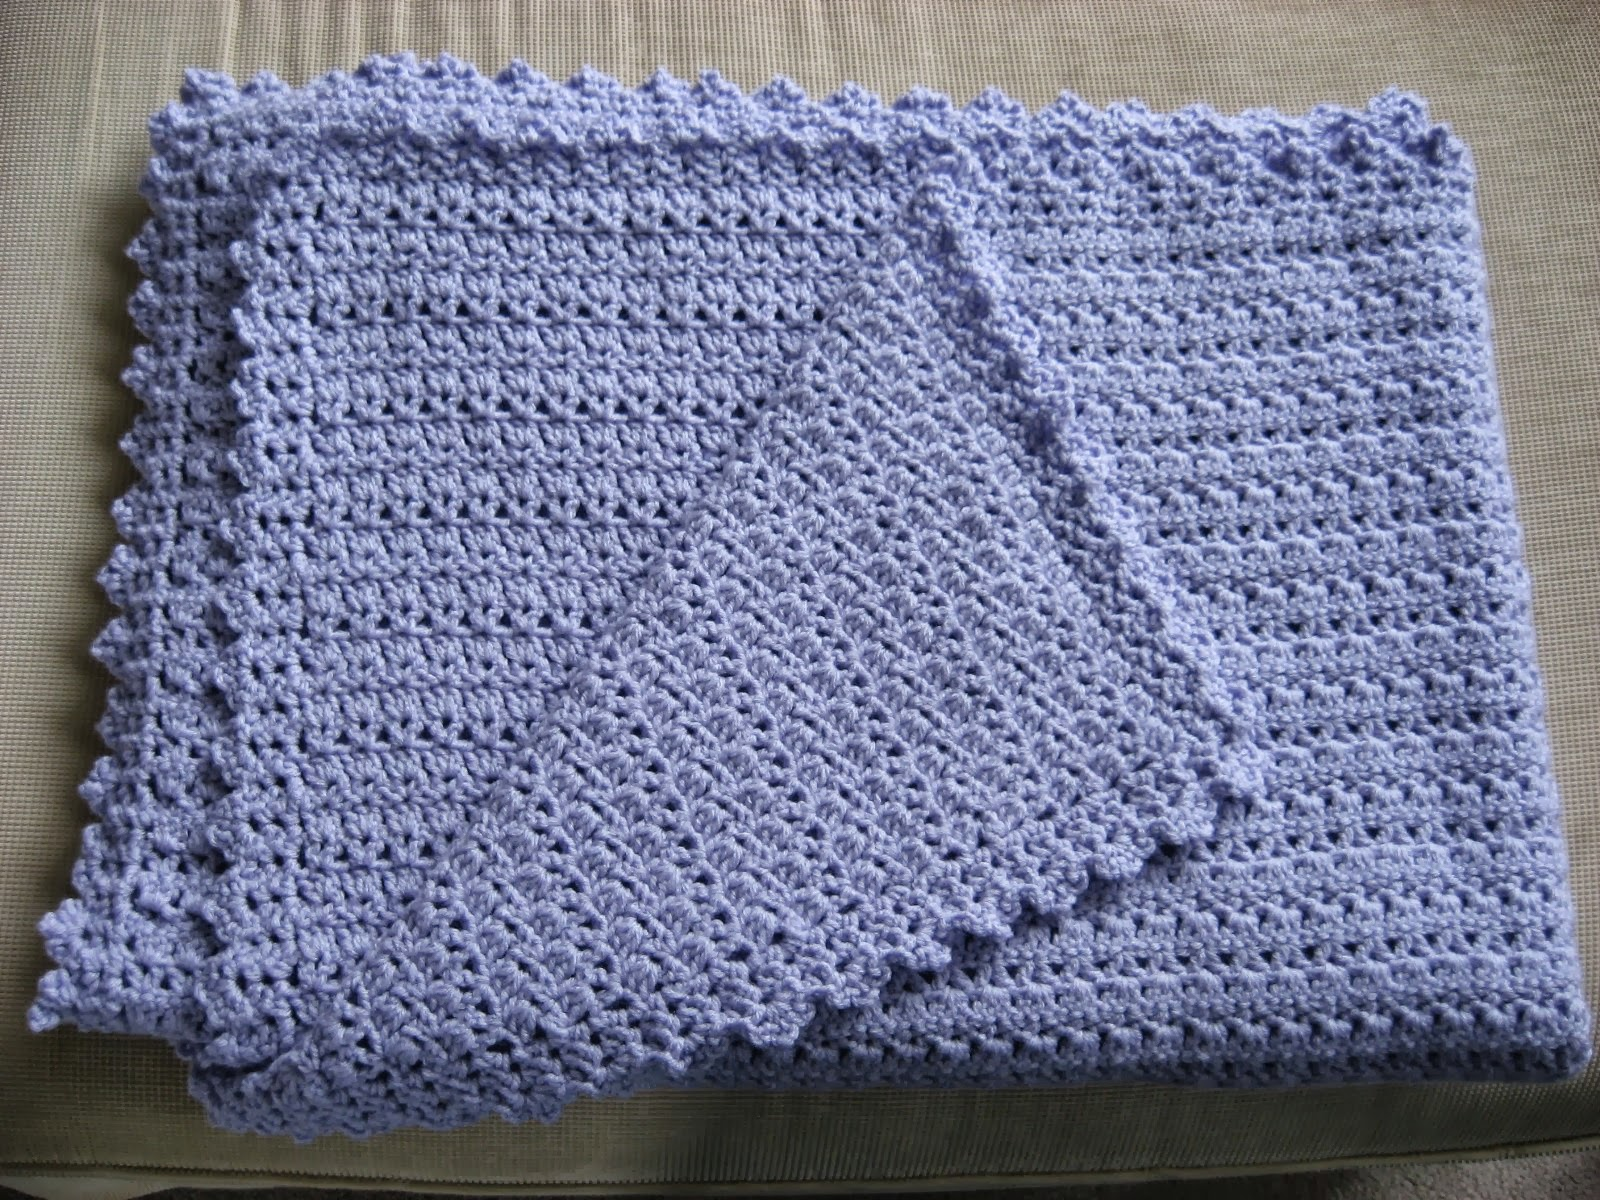 Crochet Afghan Pattern For Wedding Gift : Hooked on Needles: Marys Wedding Gift Afghan ~ Finished ...